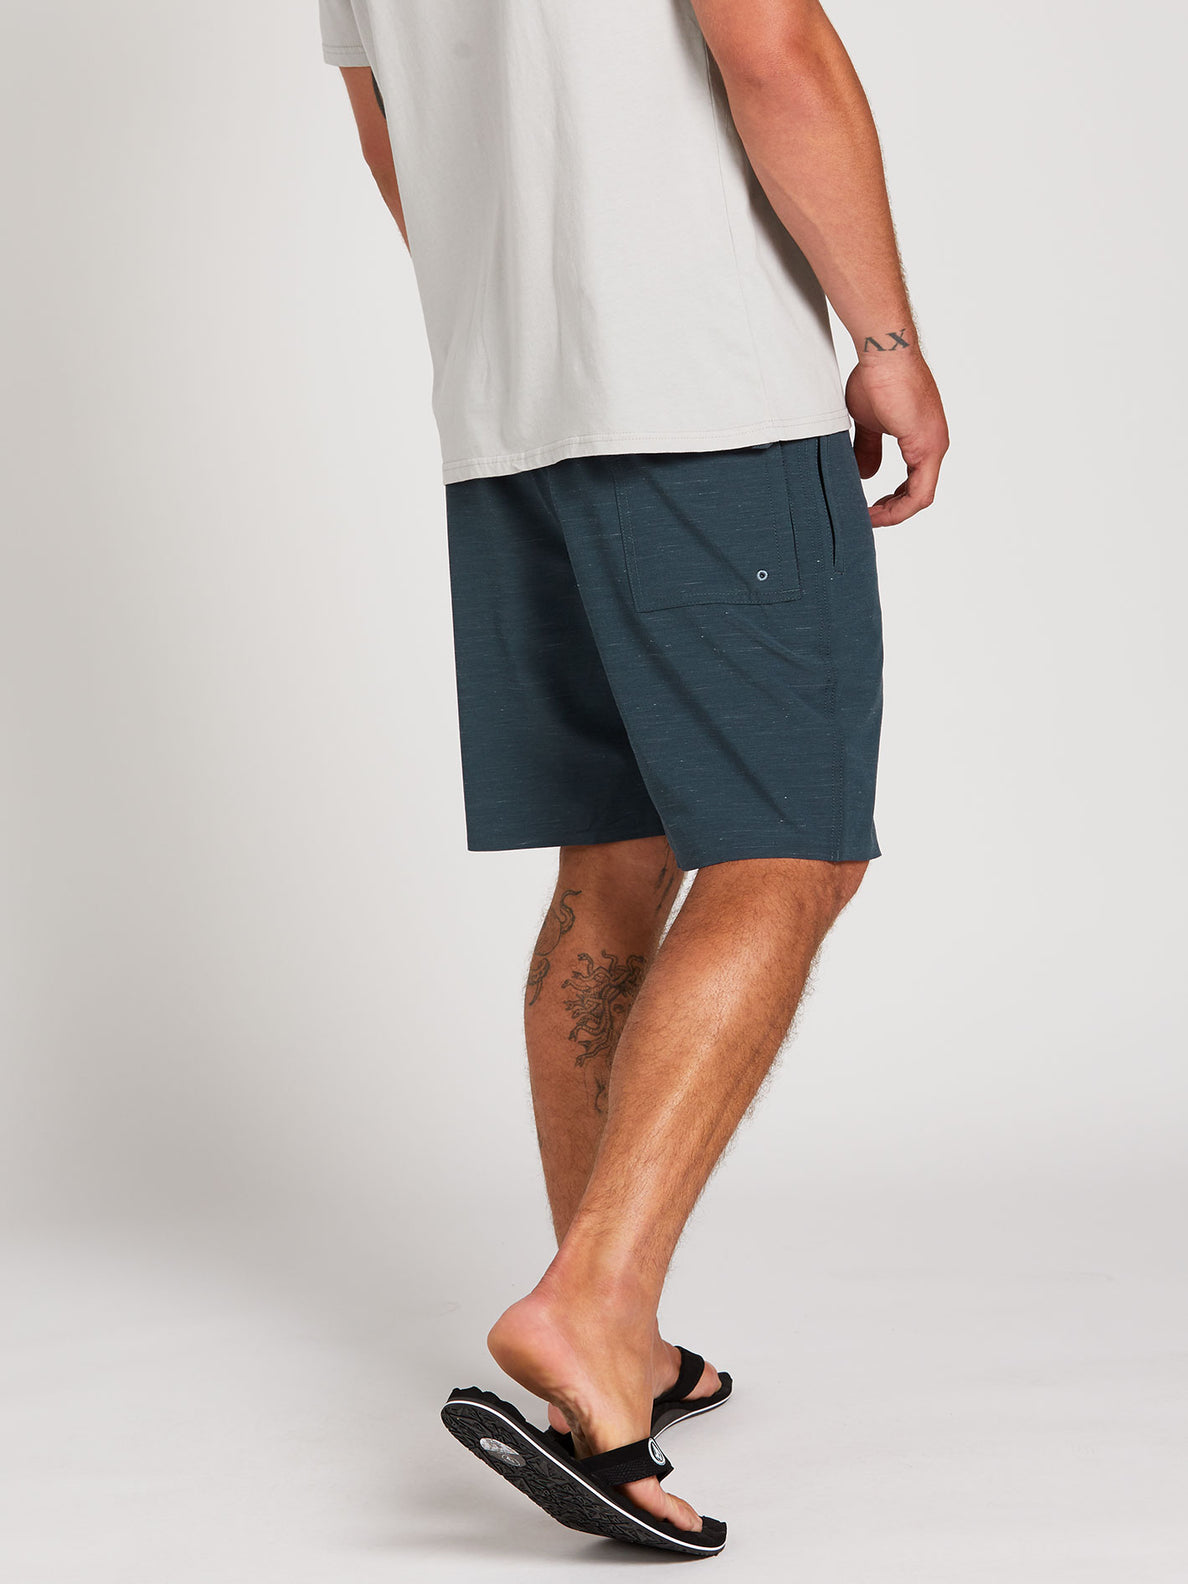 Packasack Lite Shorts - Faded Navy (A3212001_FDN) [2]